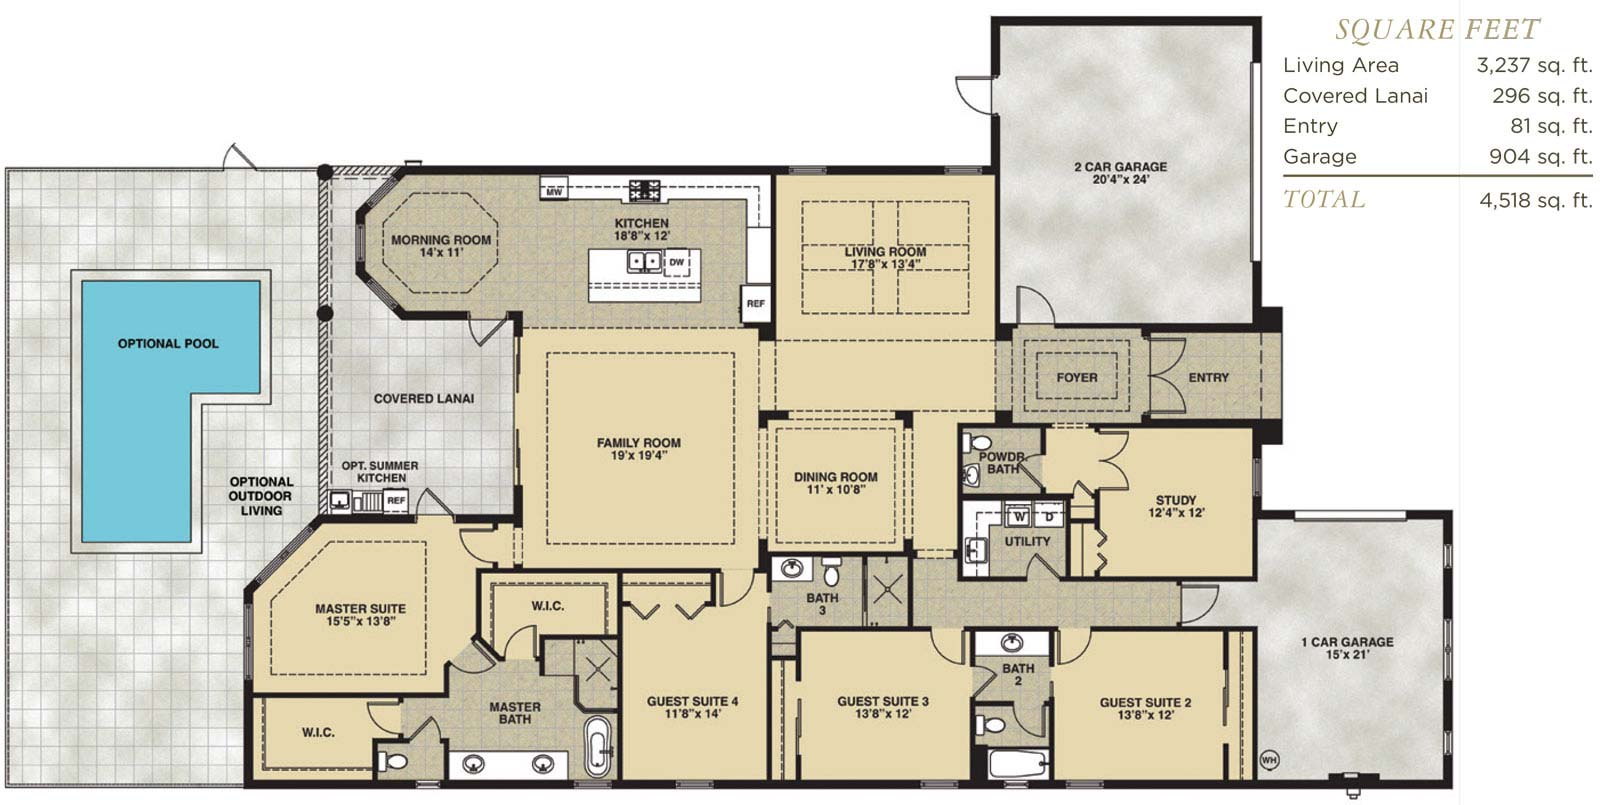 Antilles Floor Plan in Hidden Harbor Estates, Fort Myers, Stock Construction, Four Bedroom, Three and One Half Bath, Living Room, Family Room, Dining Room, Study, Covered Lanai, 2-Car Garage and 1-Car Garage